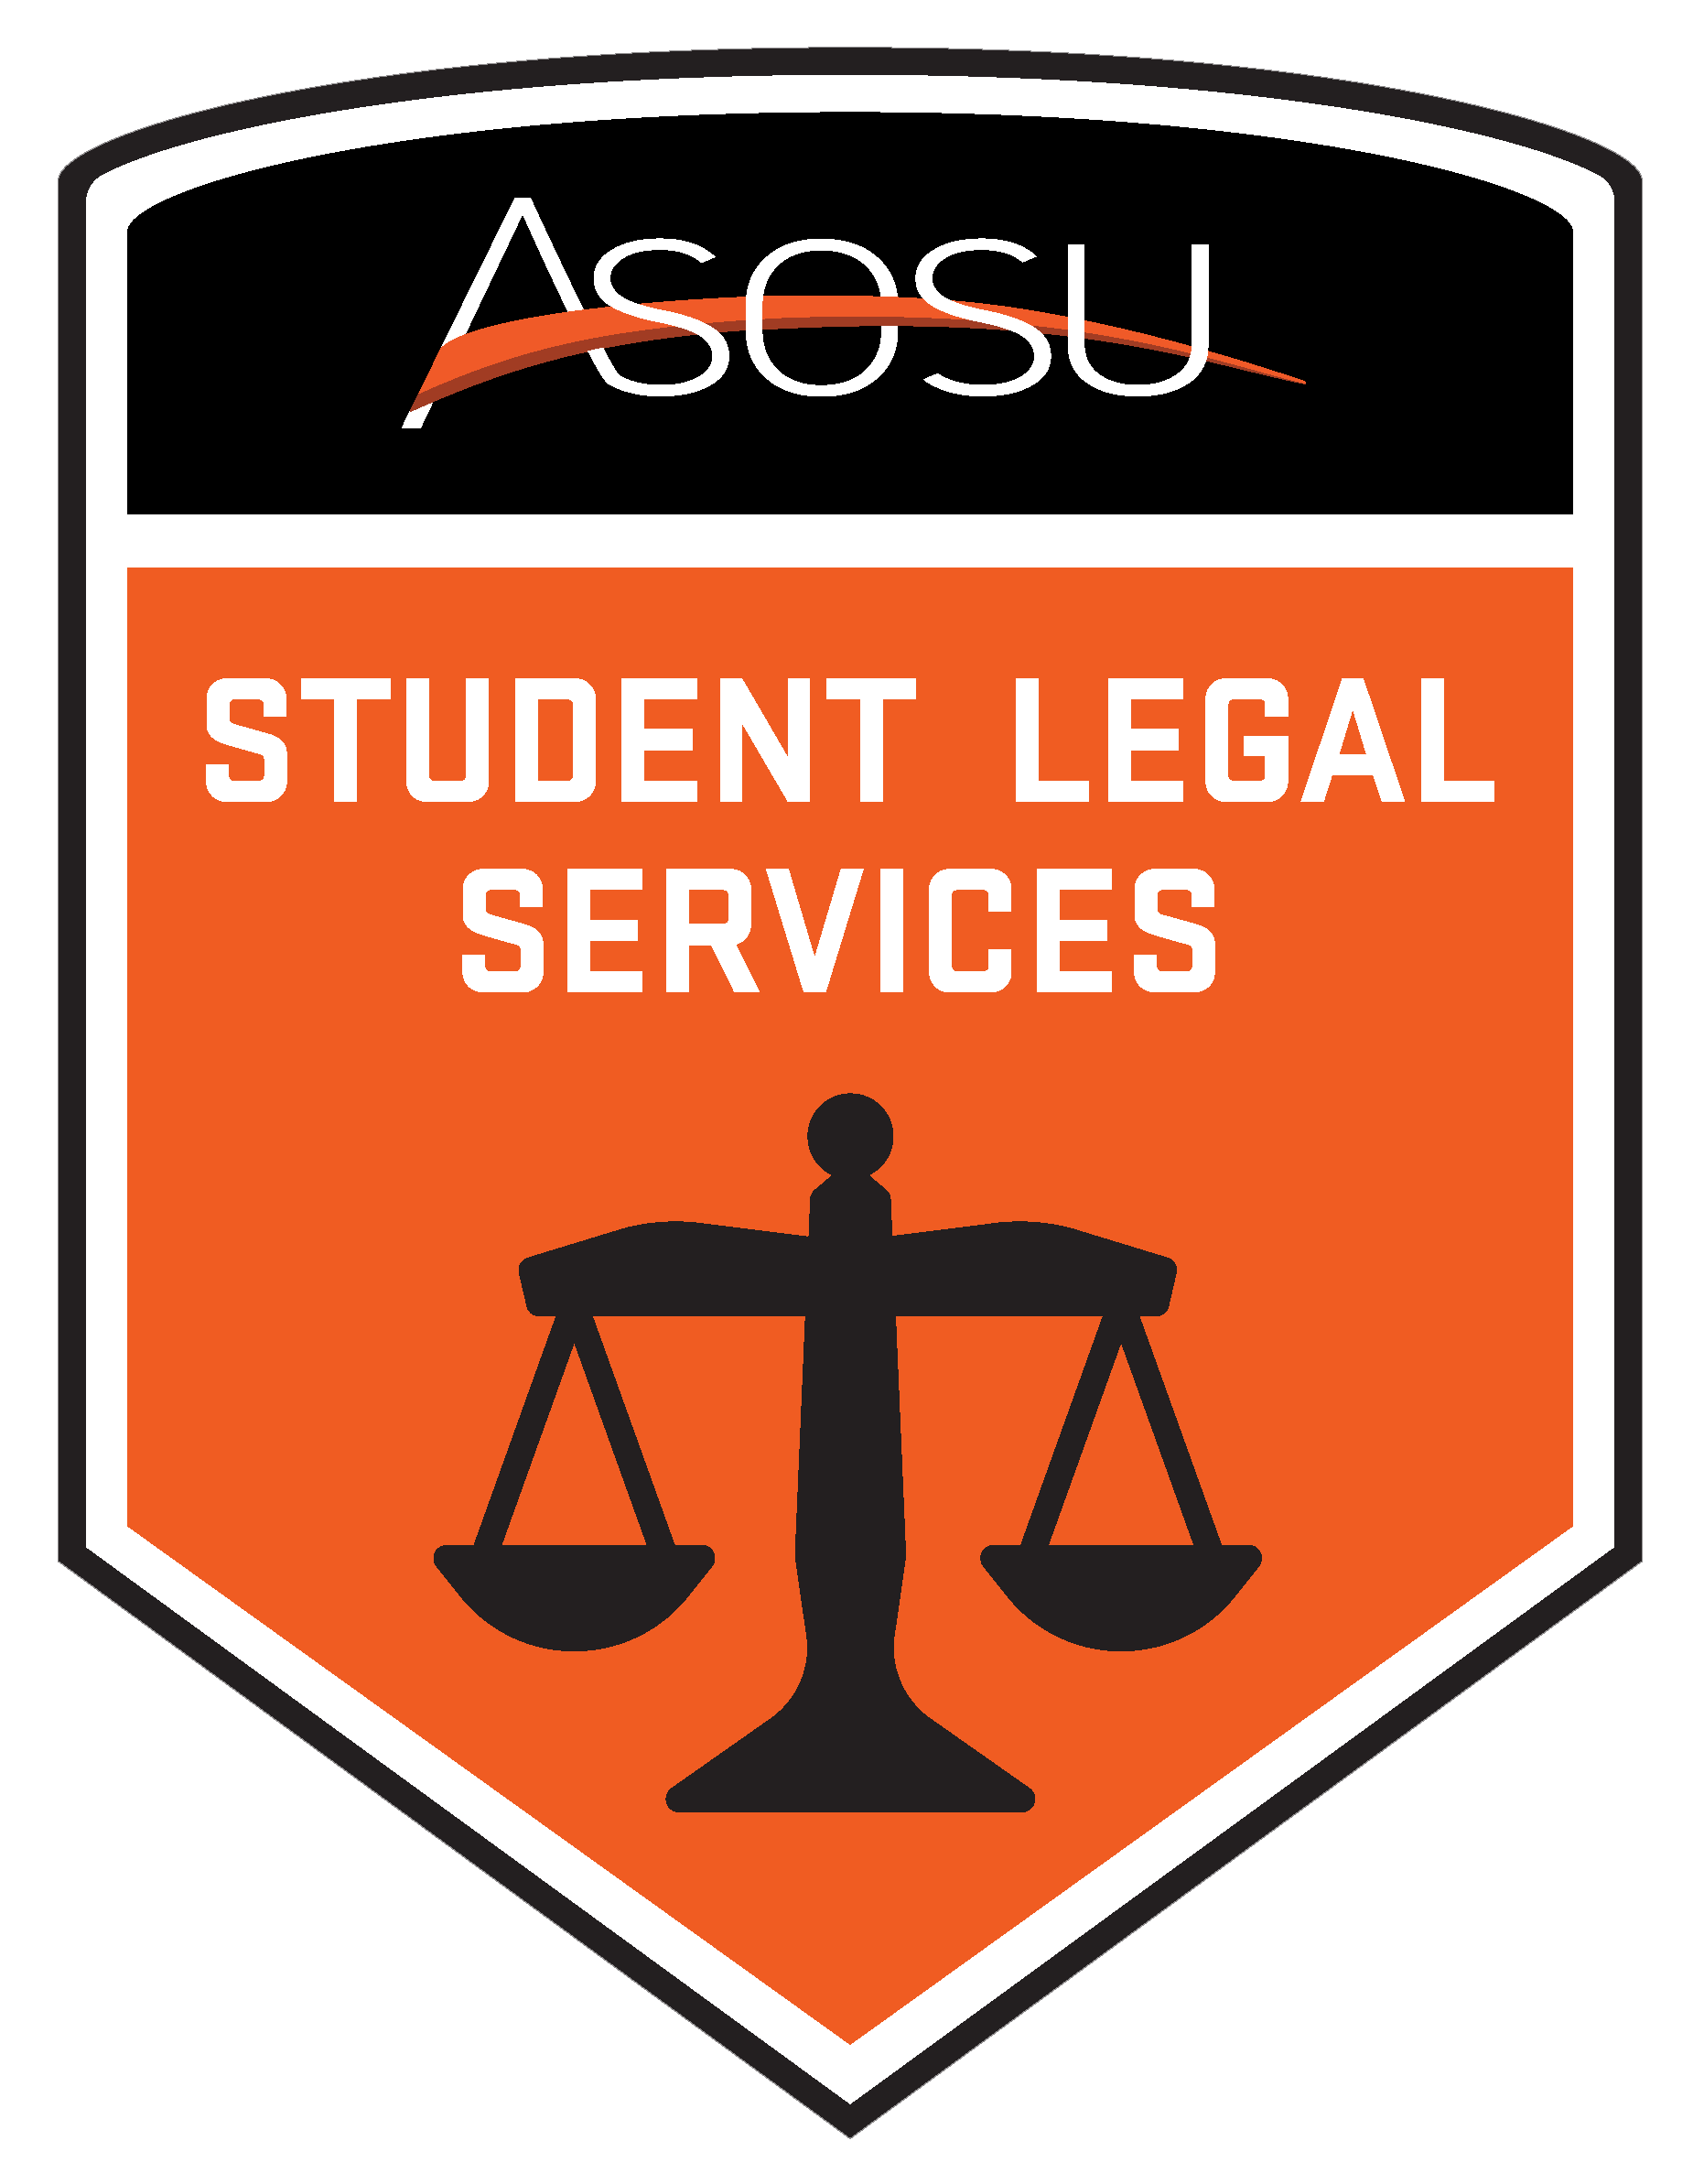 Oregon State Map With Cities, Asosu Student Legal Services, Oregon State Map With Cities